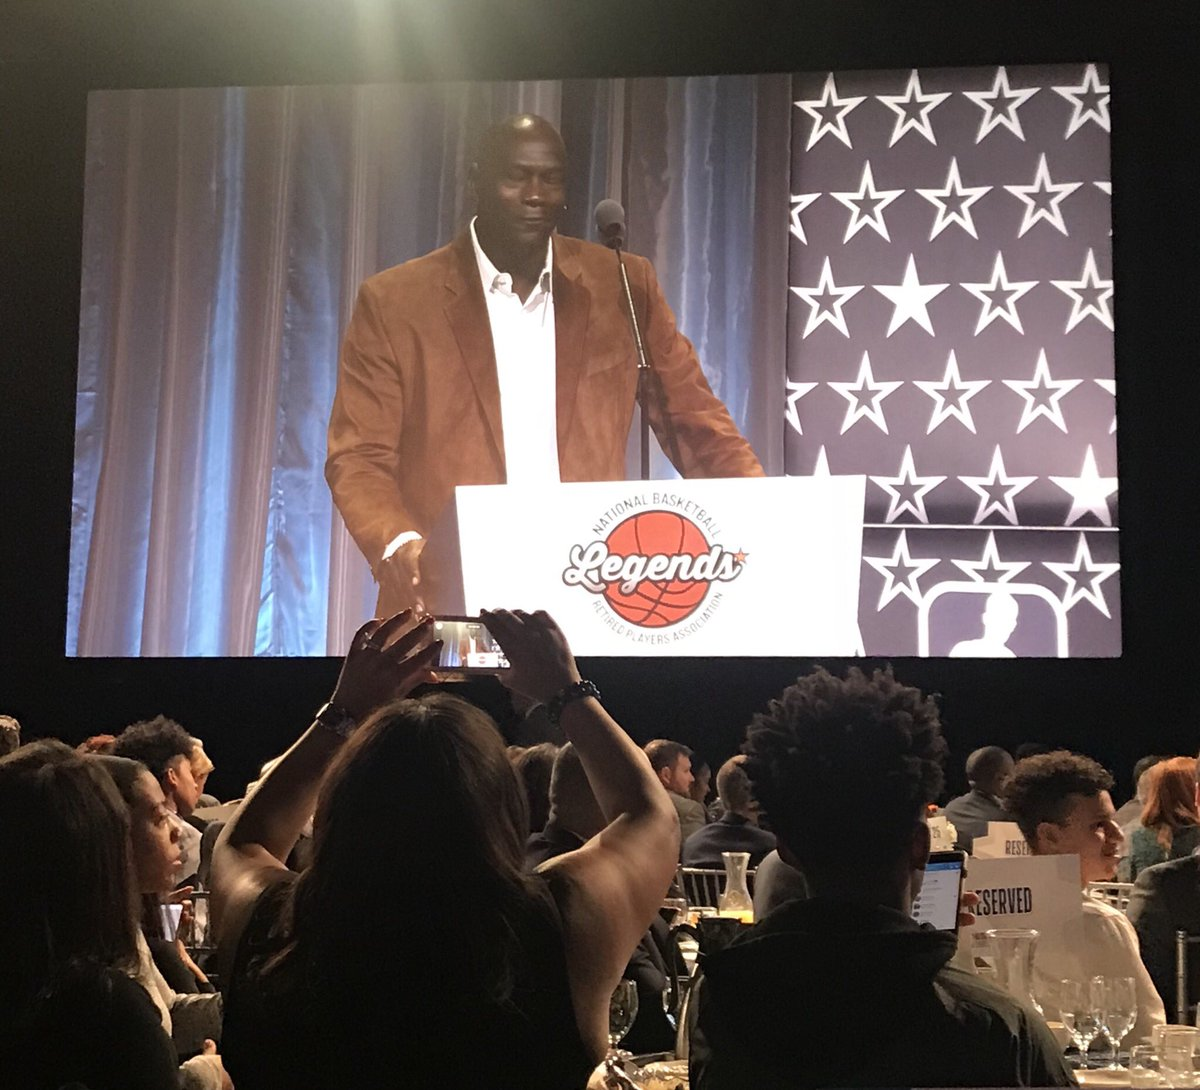 Happy 56th Birthday Michael Jordan who was honored on this special day at the 20th Annual @NBA All-Star Weekend Legends Brunch in Charlotte.